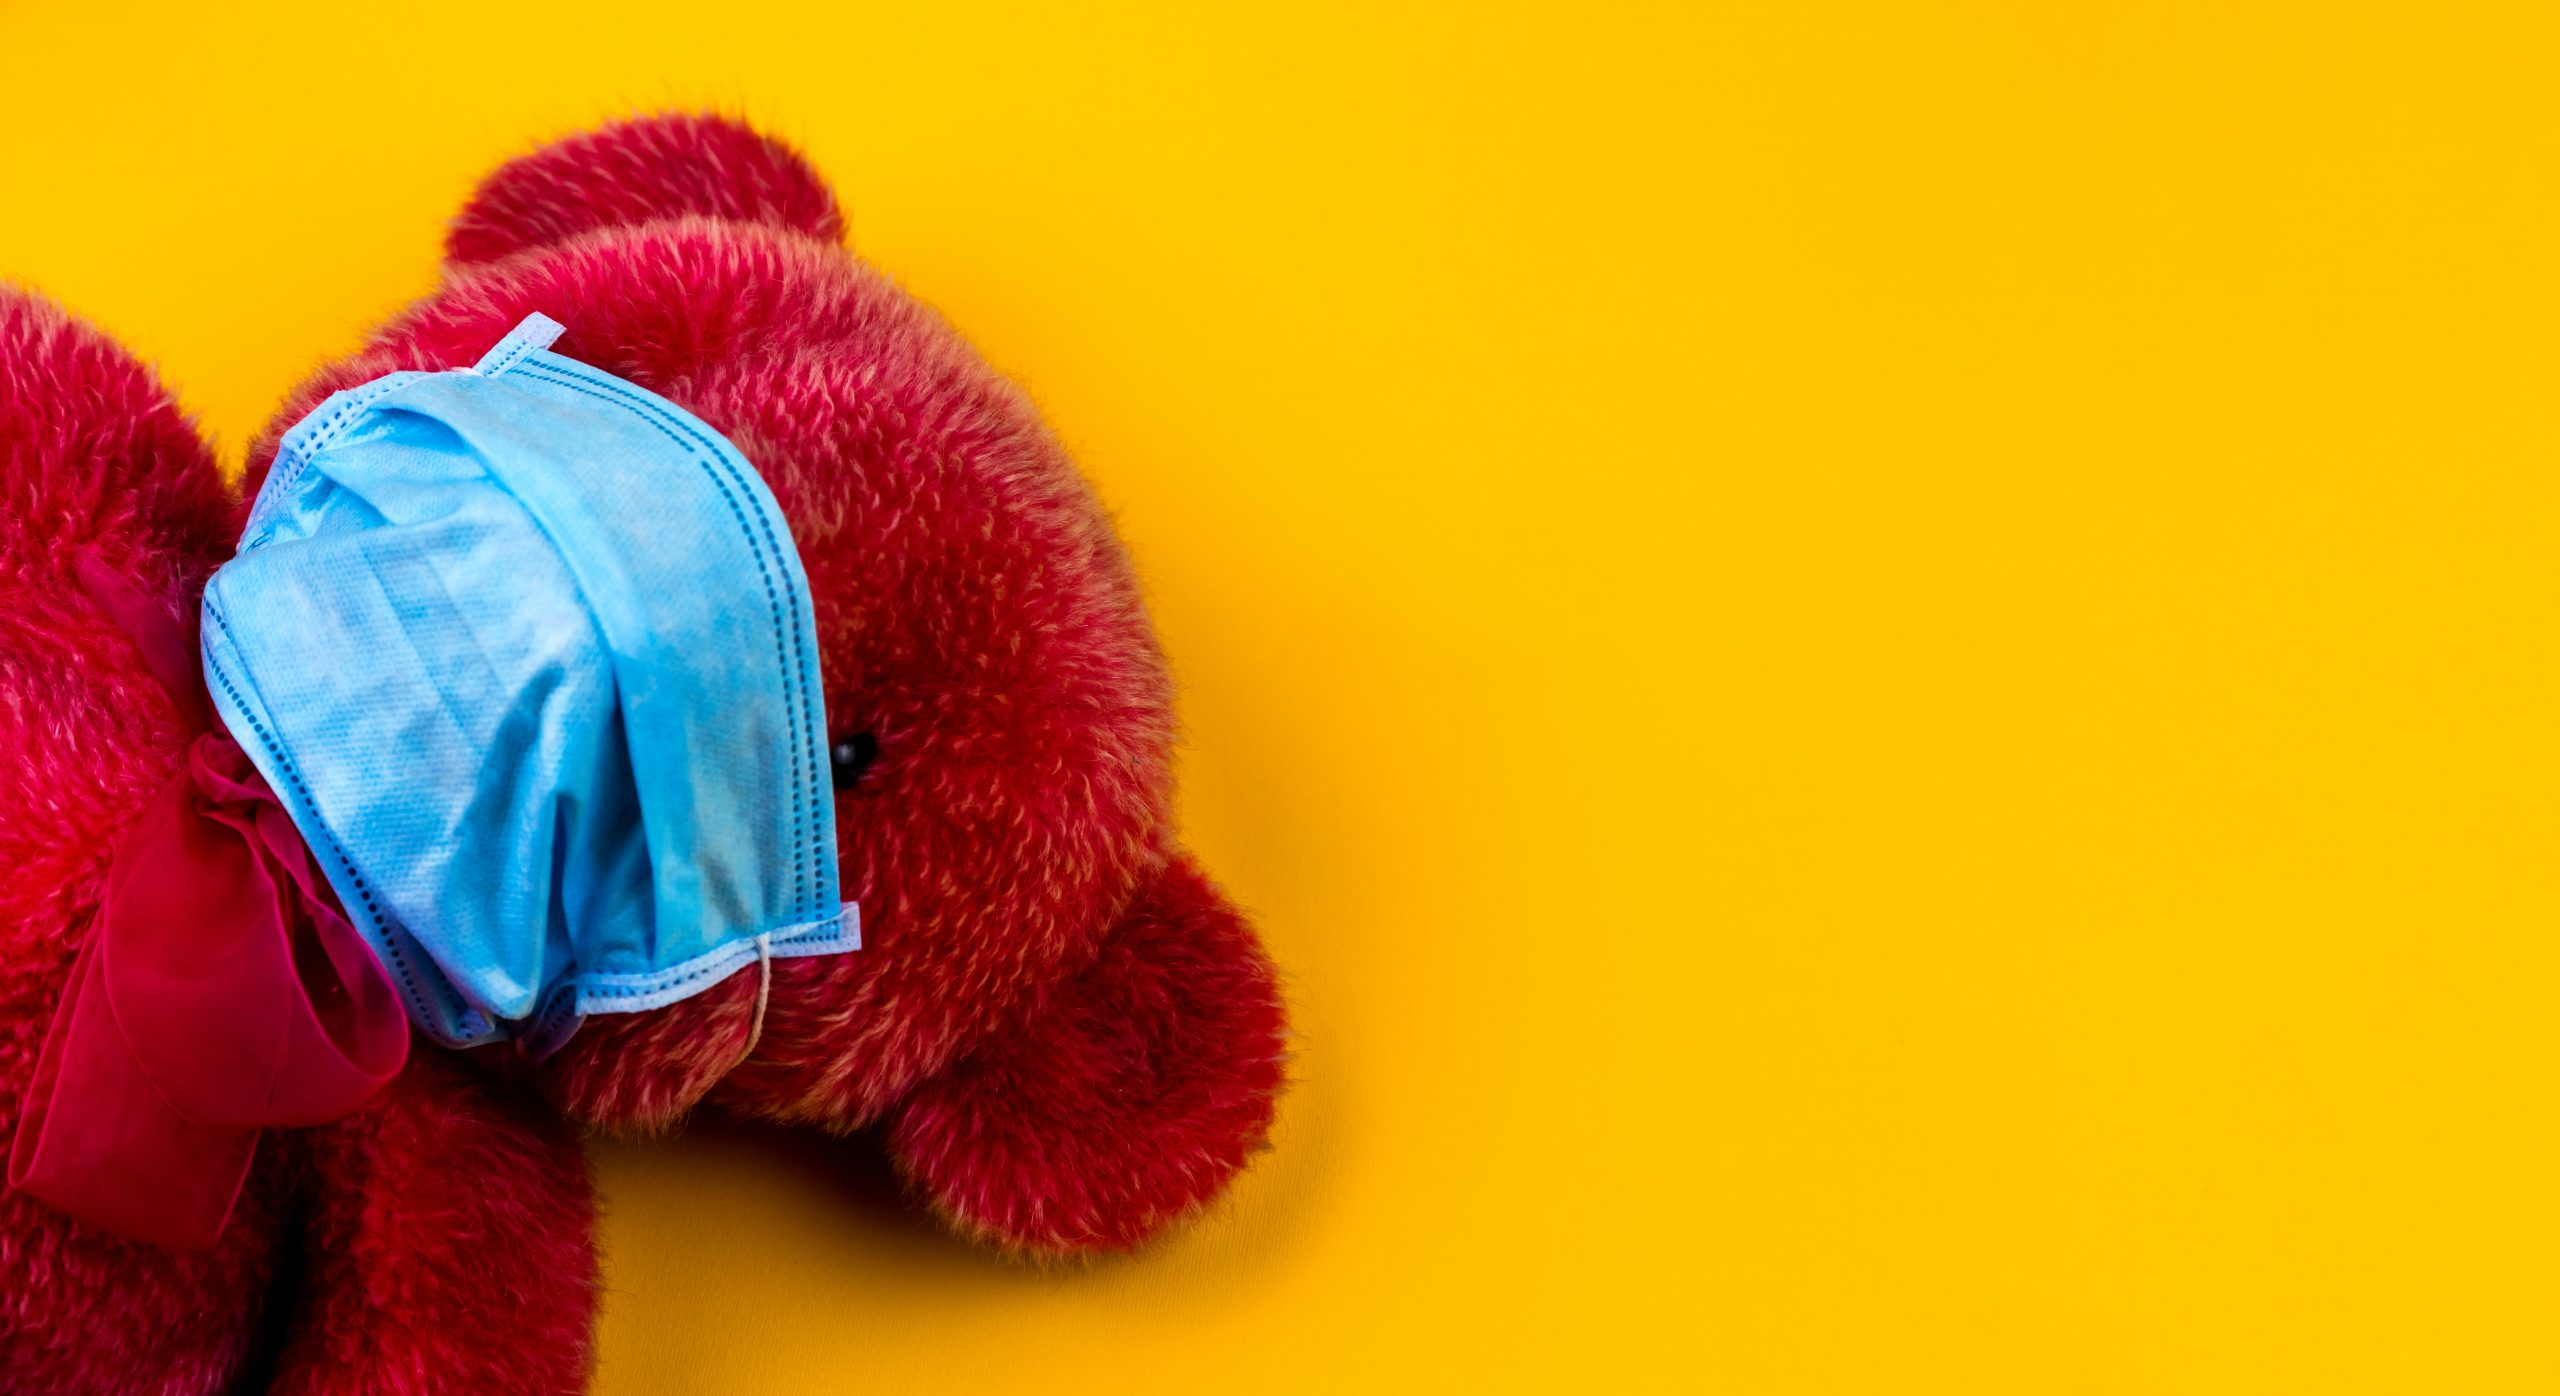 A child's bear with a mask on to prevent COVID -19 spread, test against a yellow background.